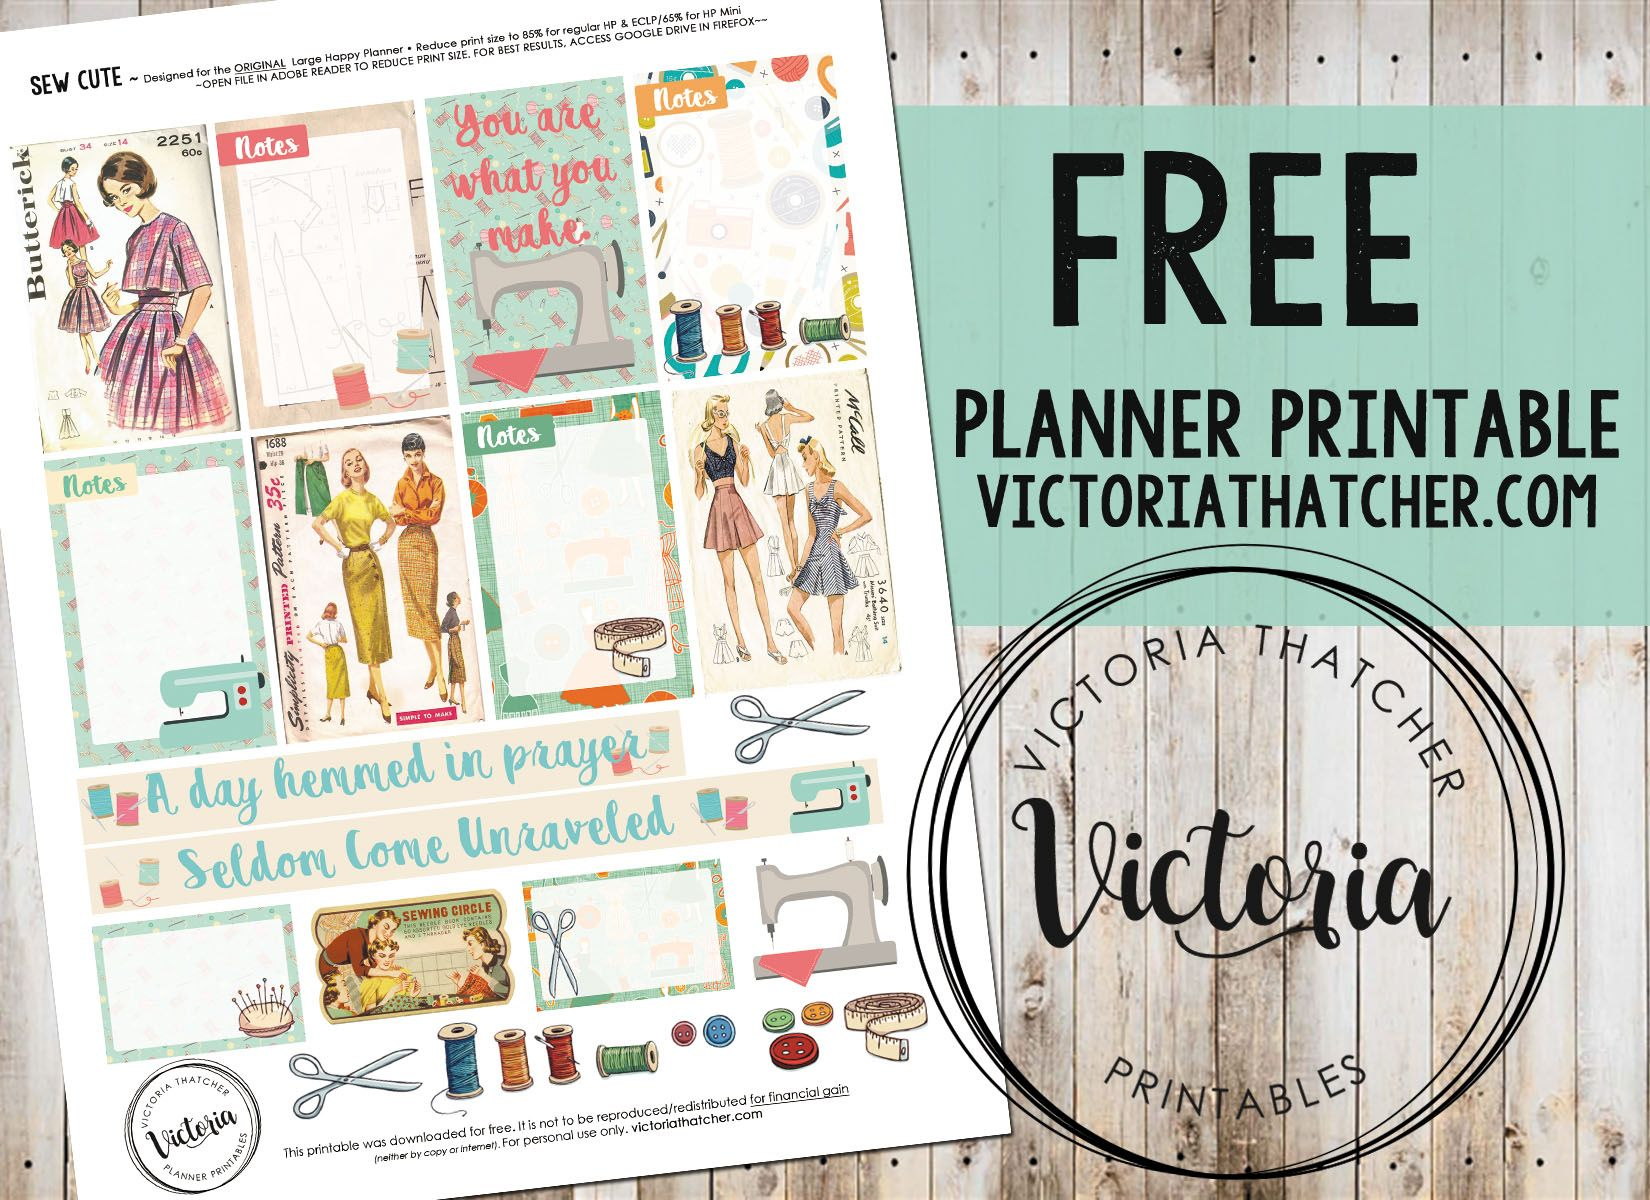 Free Printable Sew Cute Planner Stickers From Victoria Thtacher